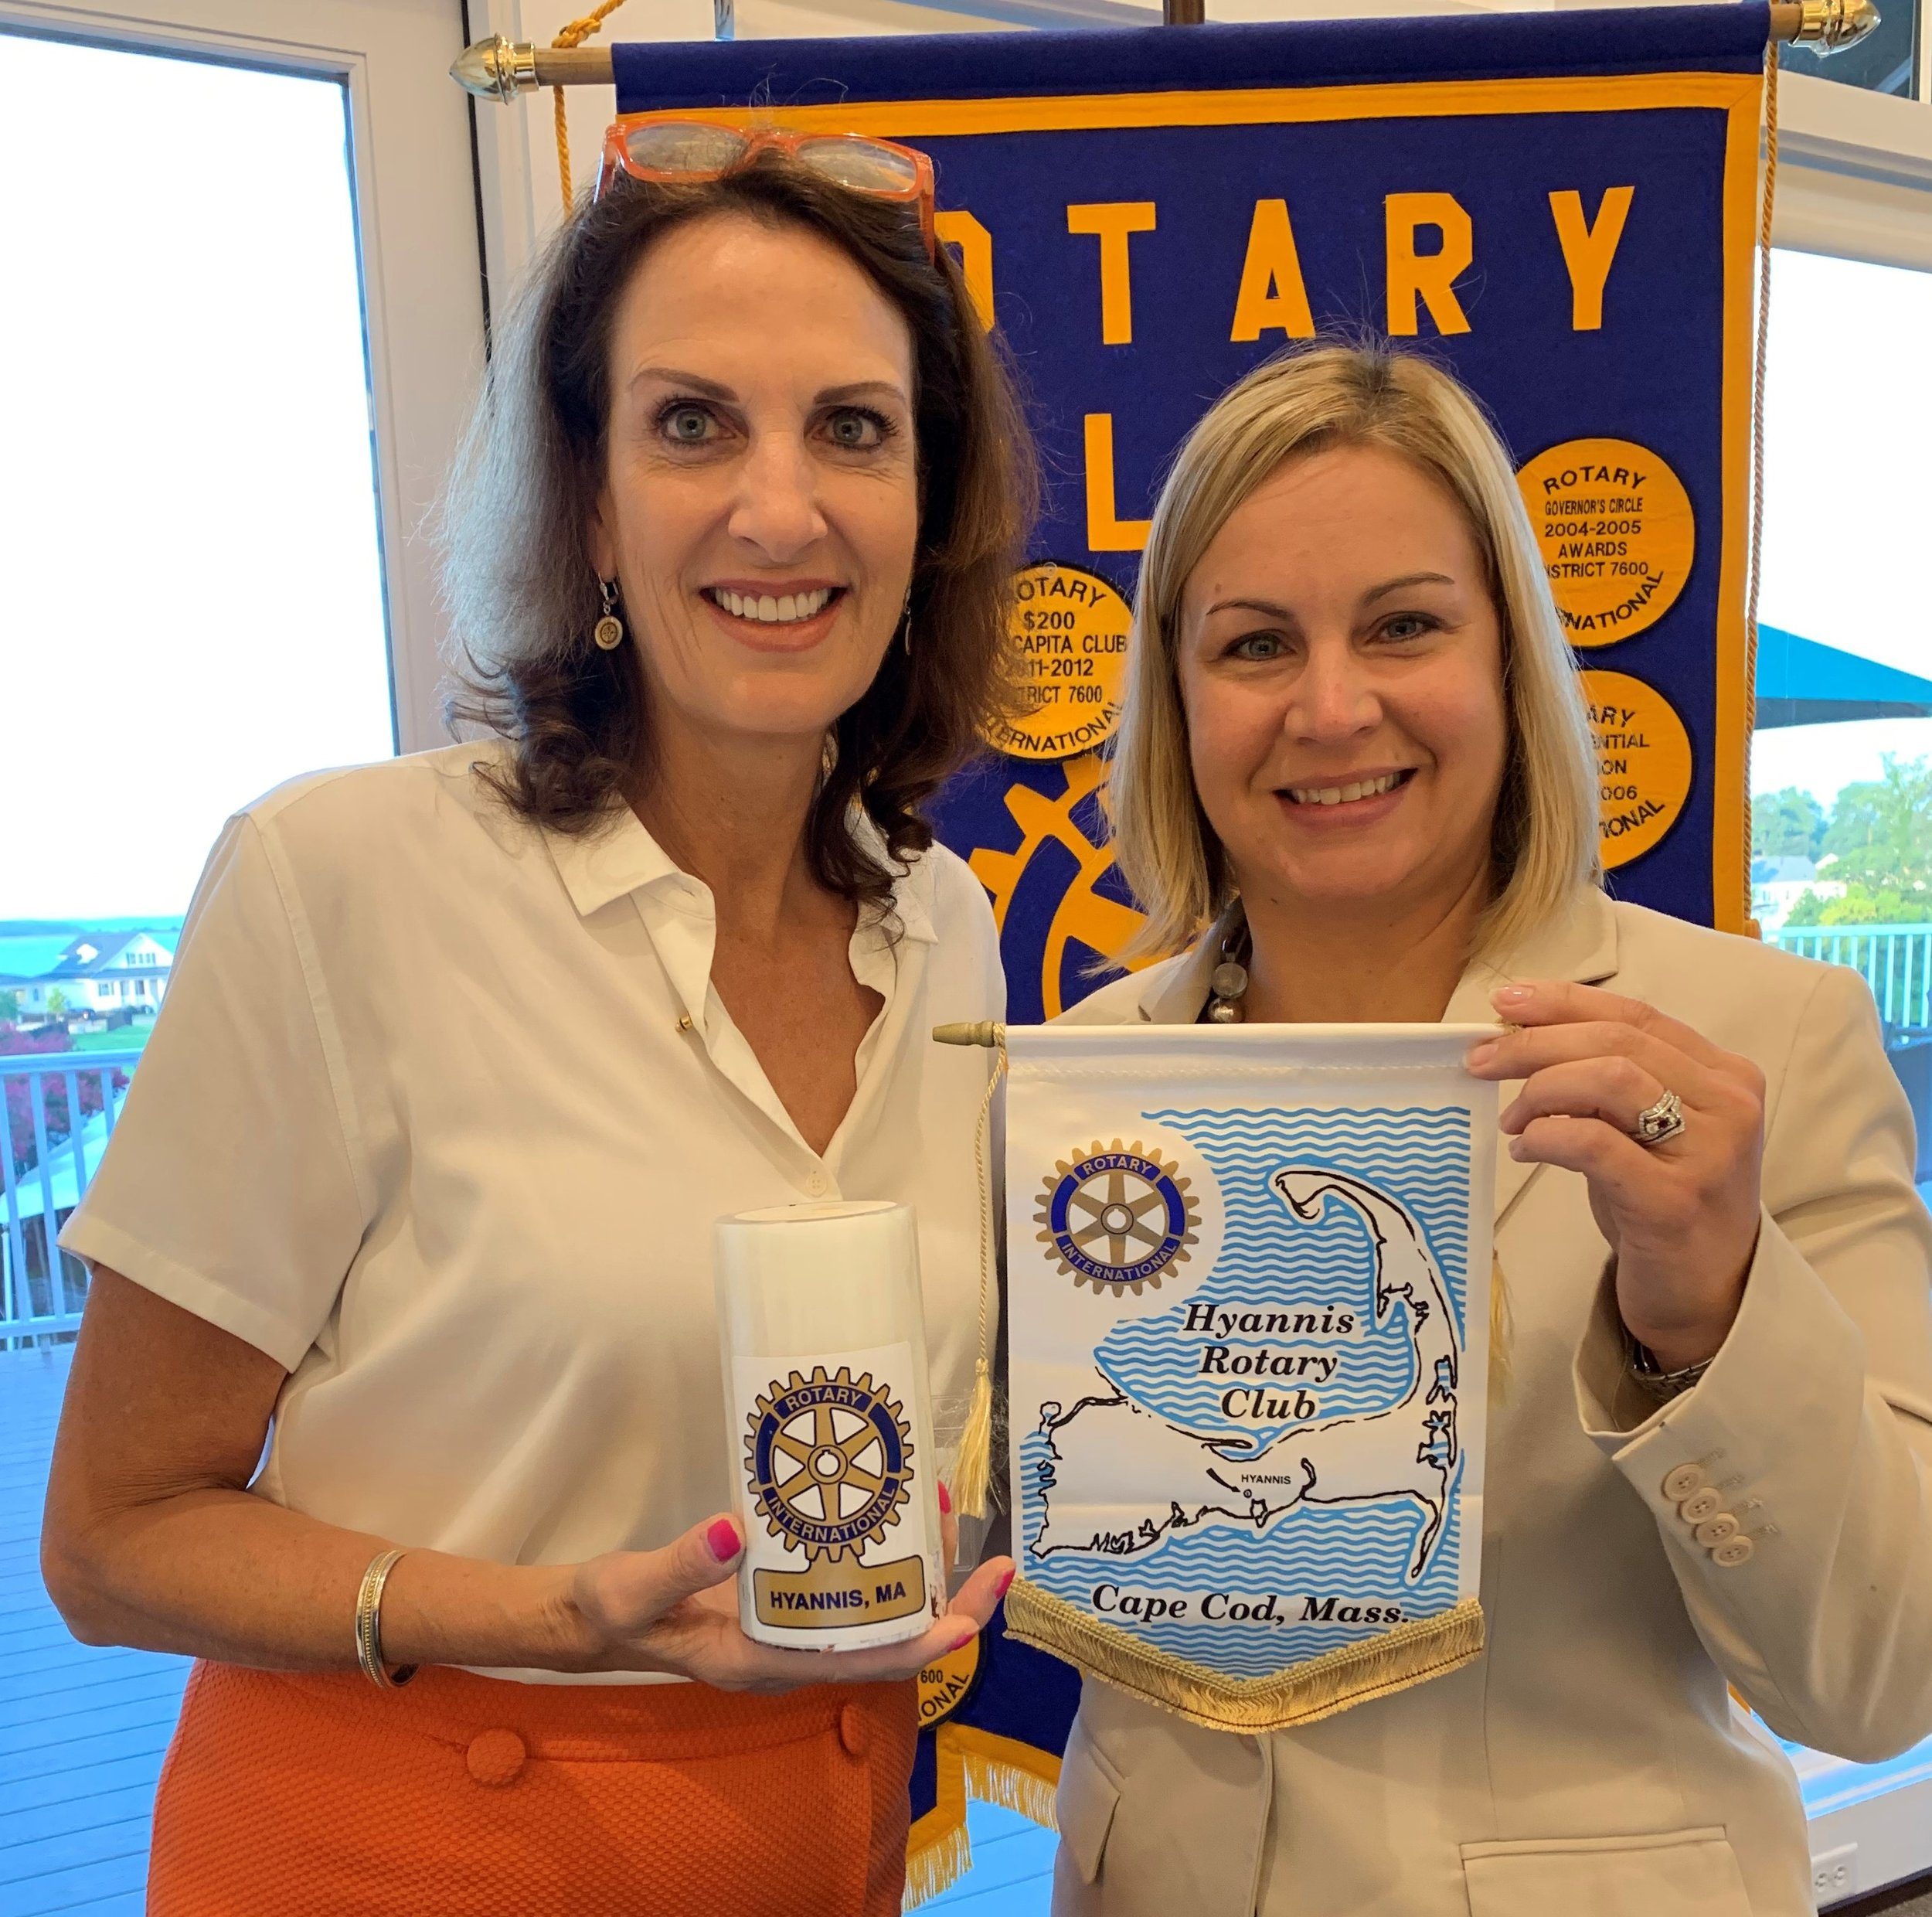 Satellite Club Member Elisabeth Reiss enjoys visiting other Rotary clubs when she travels. In this case, the Hyannis Rotary Club in Cape Cod, Massachusetts.